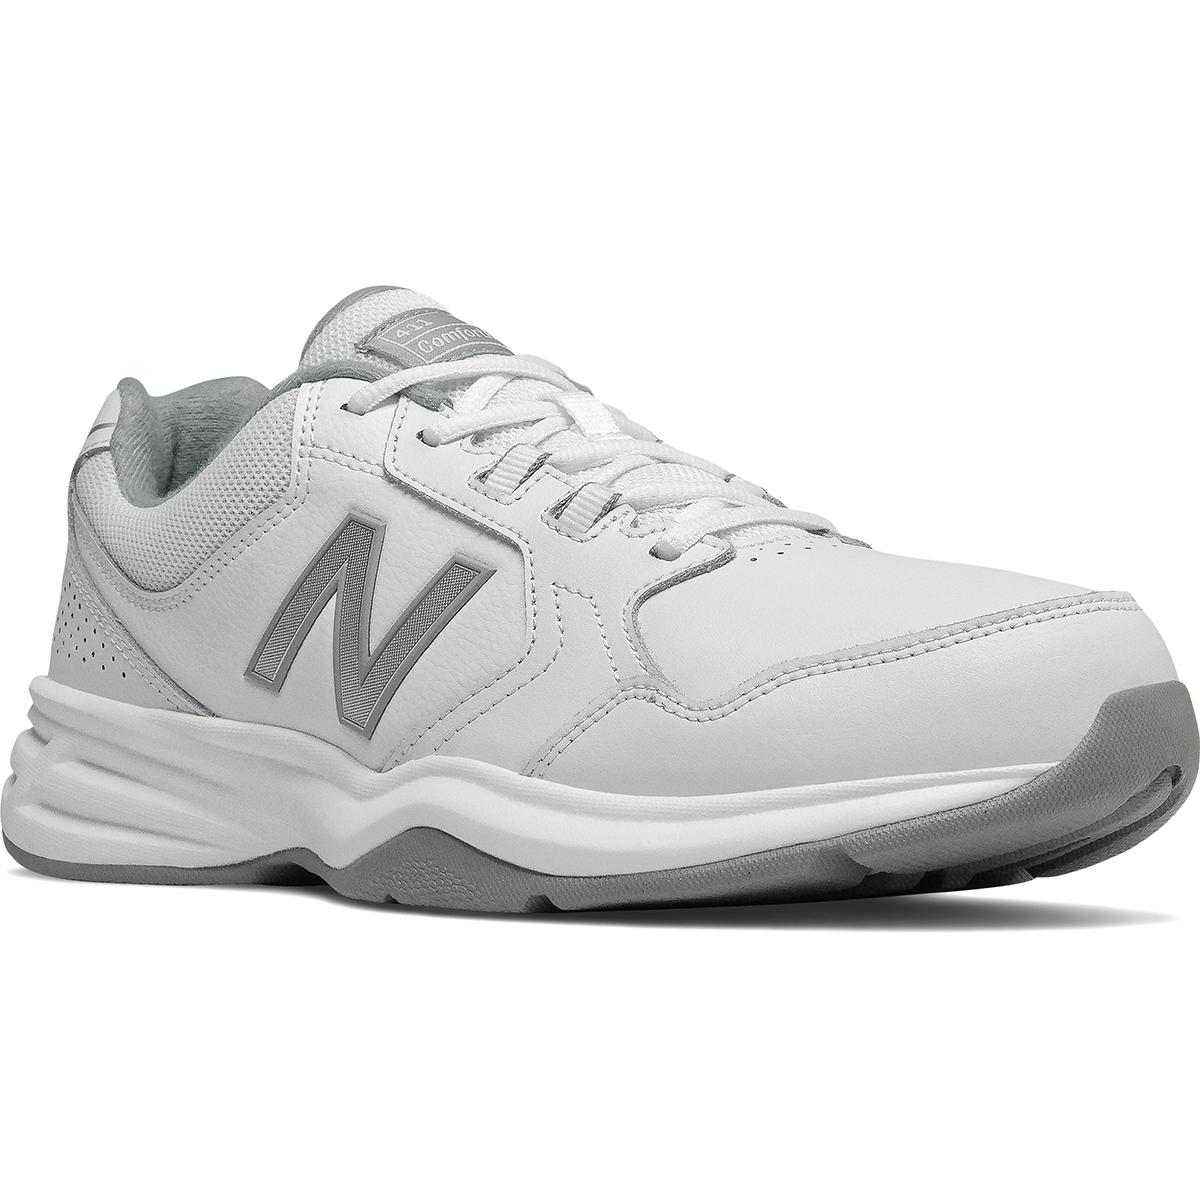 New Balance Men's 411 Walking Shoes, Wide - White, 9